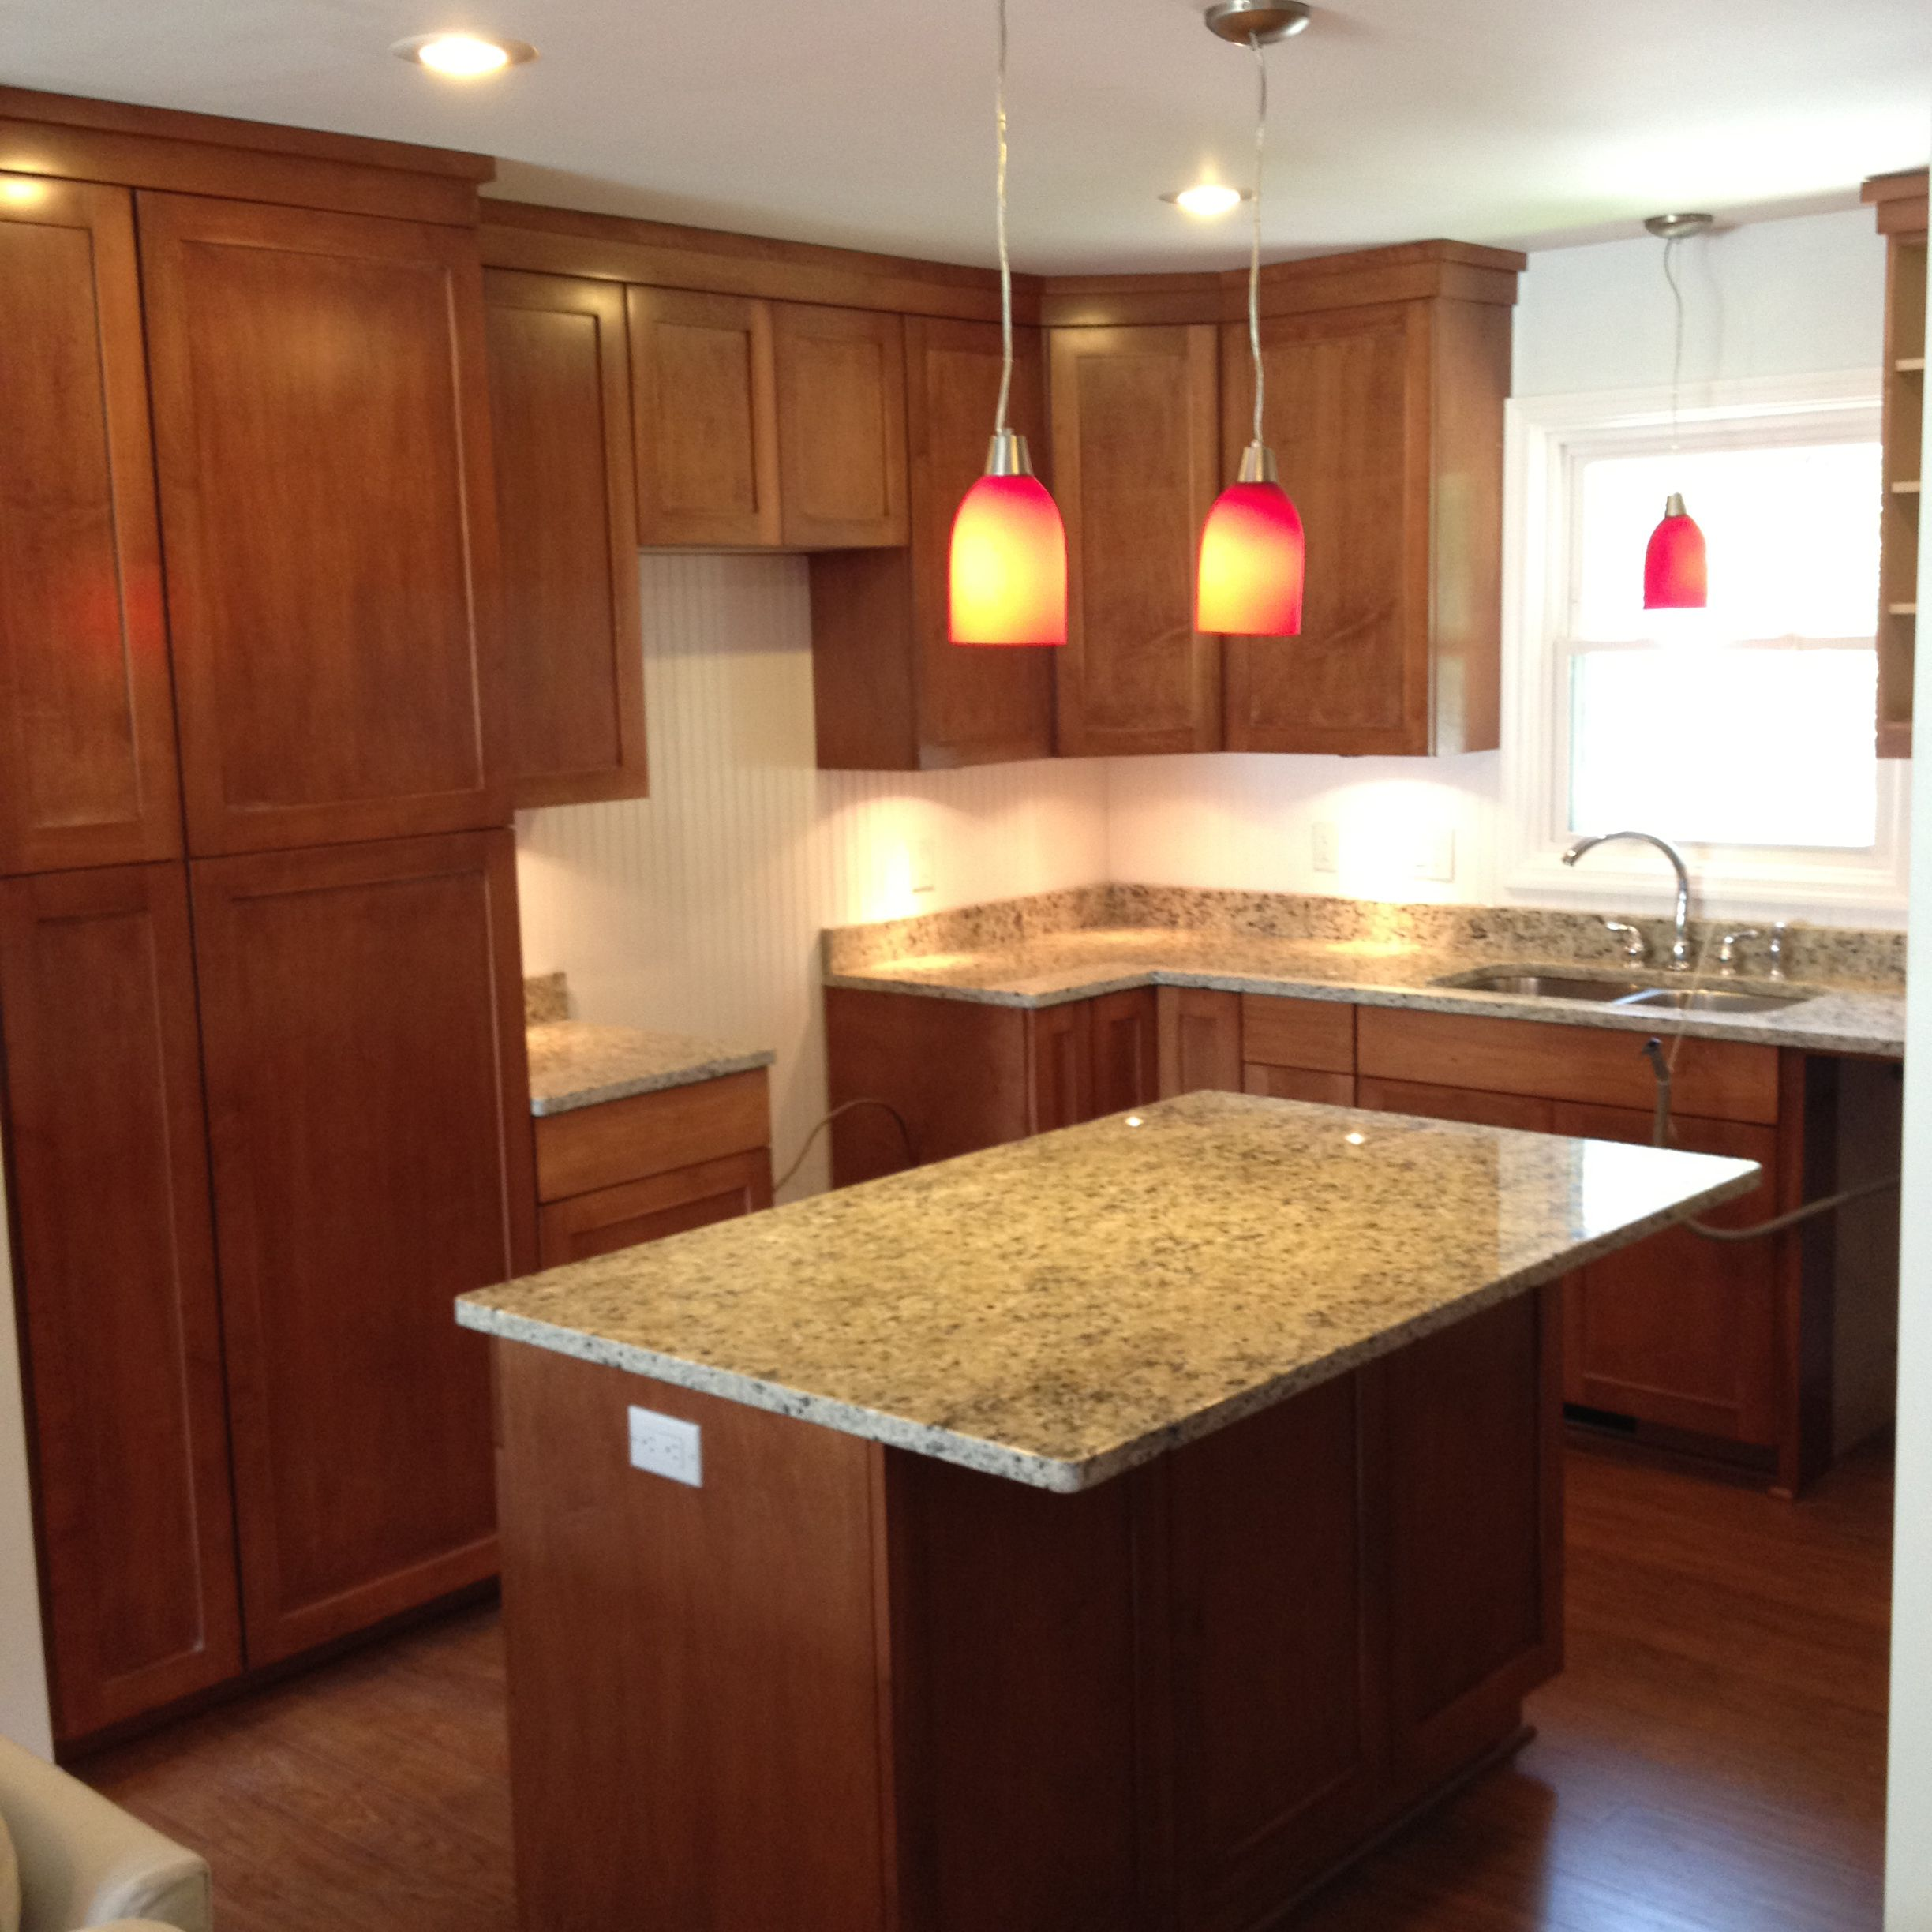 Great Looking Kitchens check out this custom-designed kitchen islandwoods cabinets